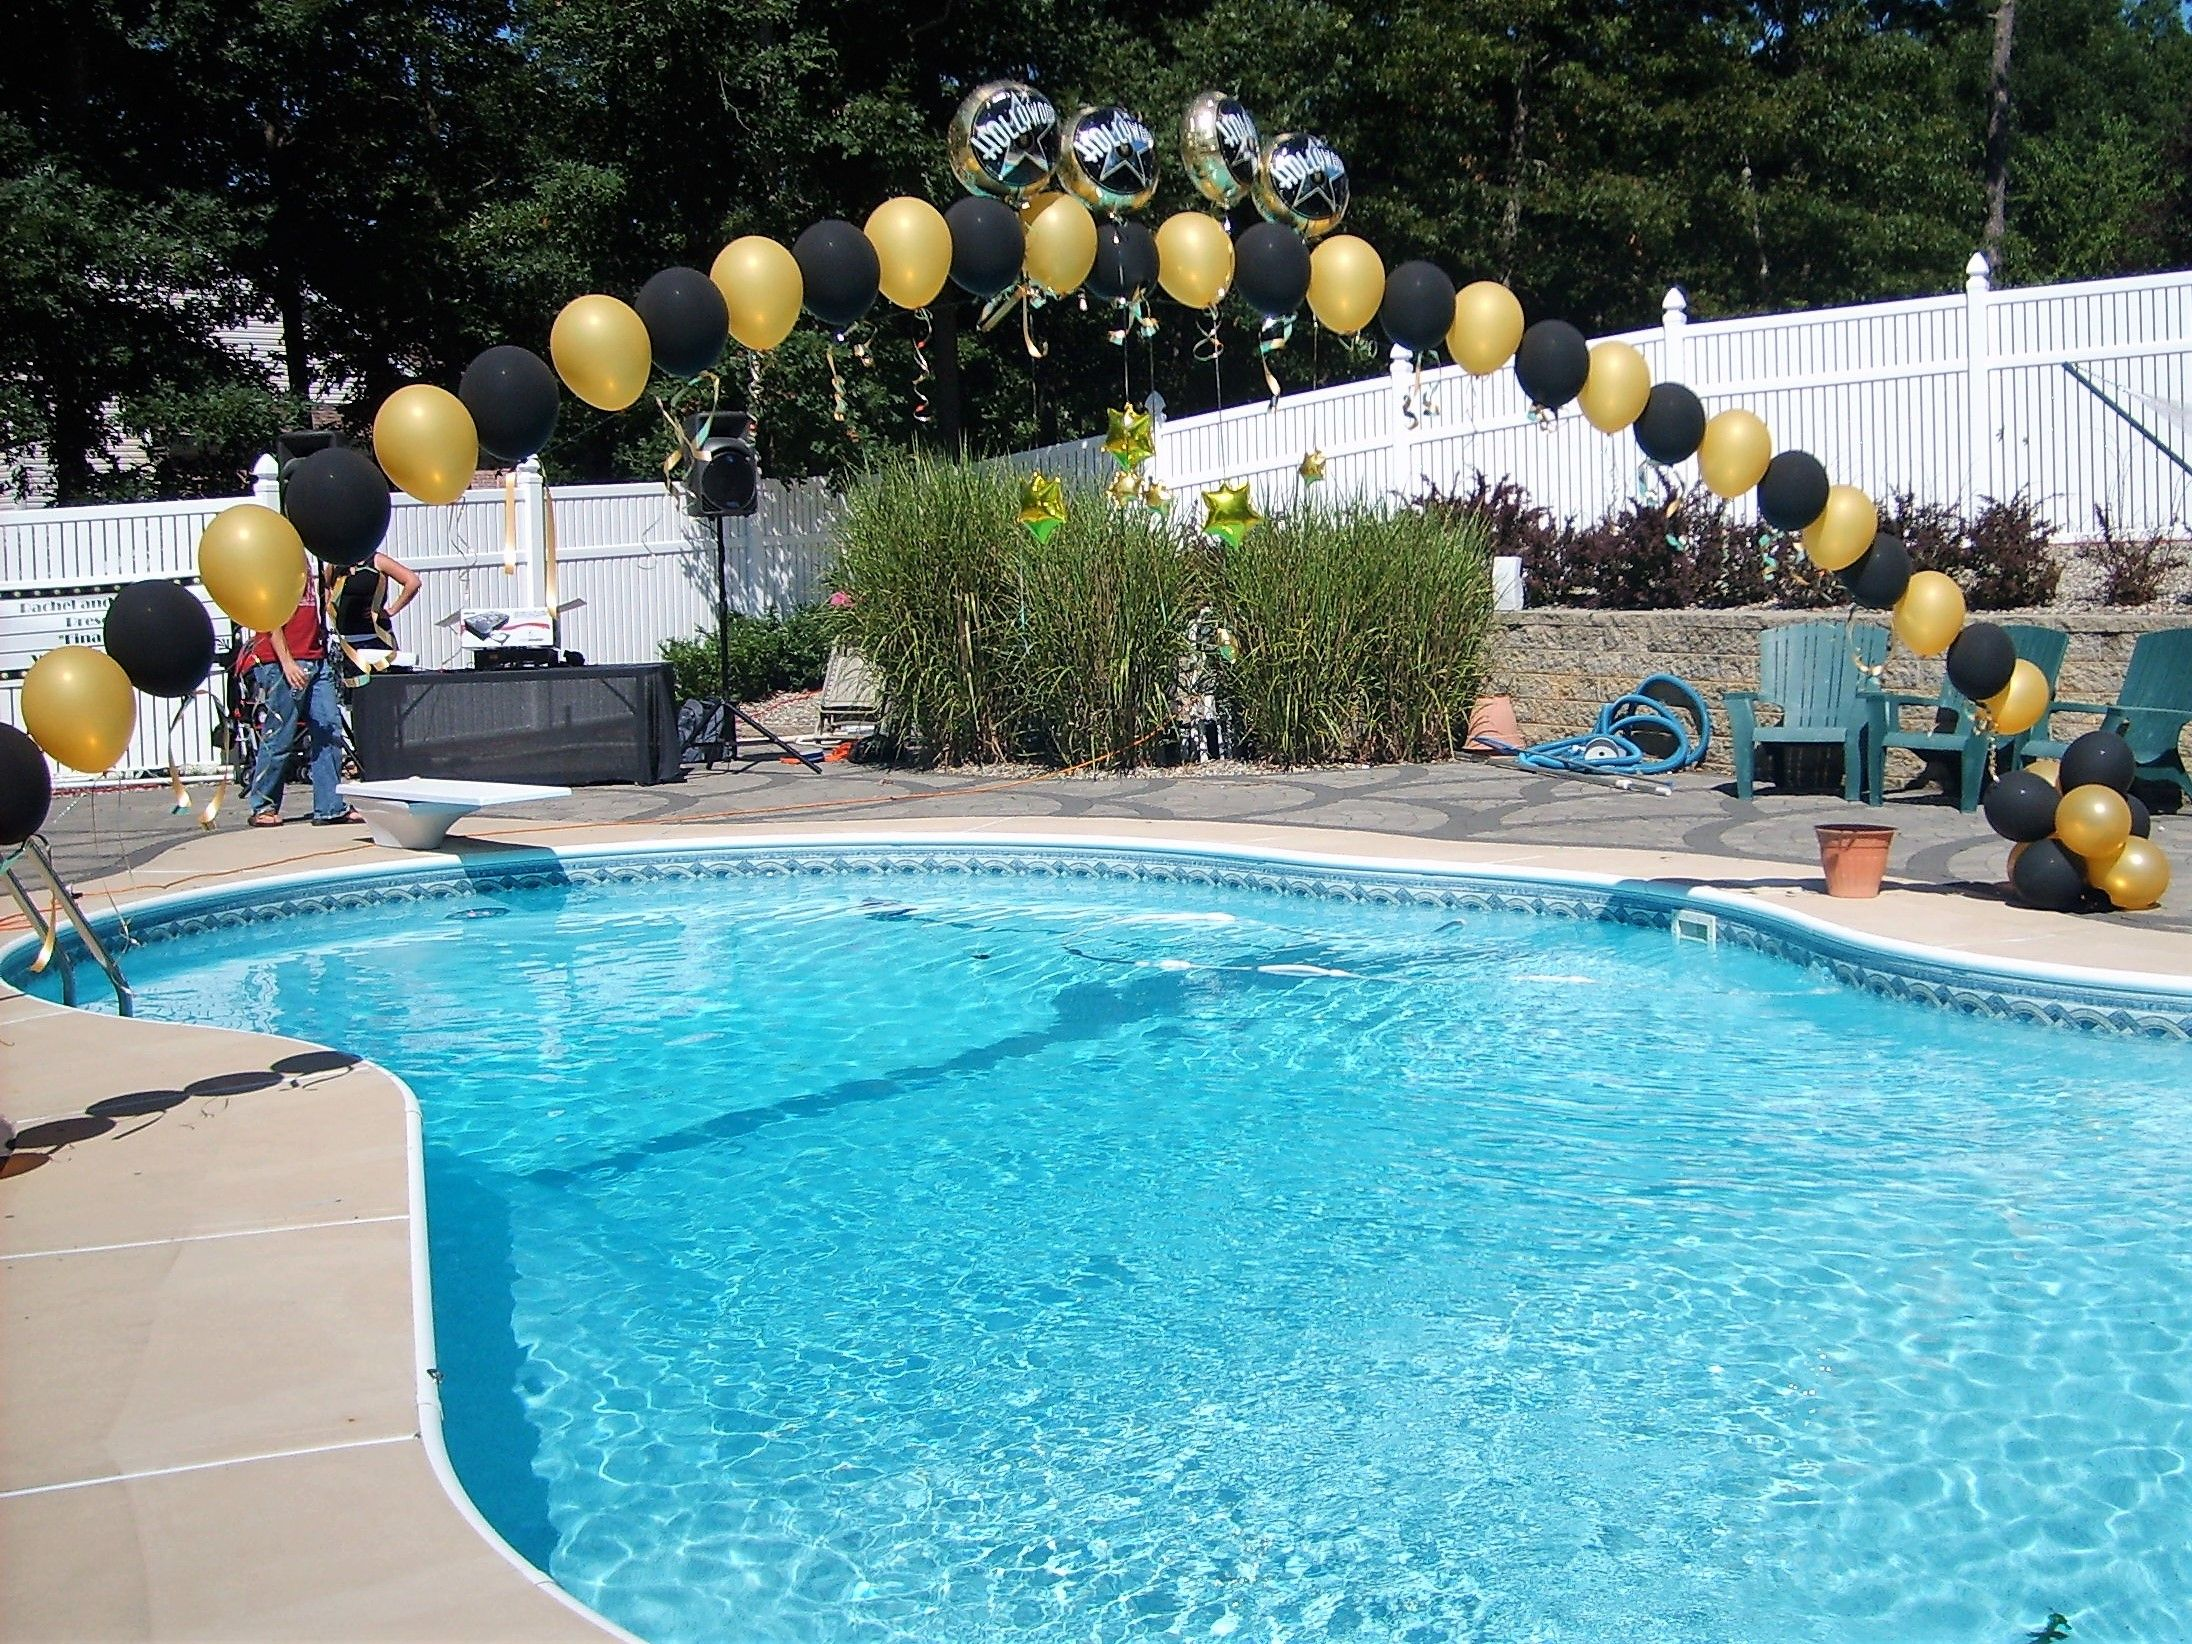 Summer Fun With Balloon Arches Over The Pool Single Pearl Balloon Arch Gold And Black Color Scheme Party Balloon Arch Pearl Balloons Pool Party Decorations